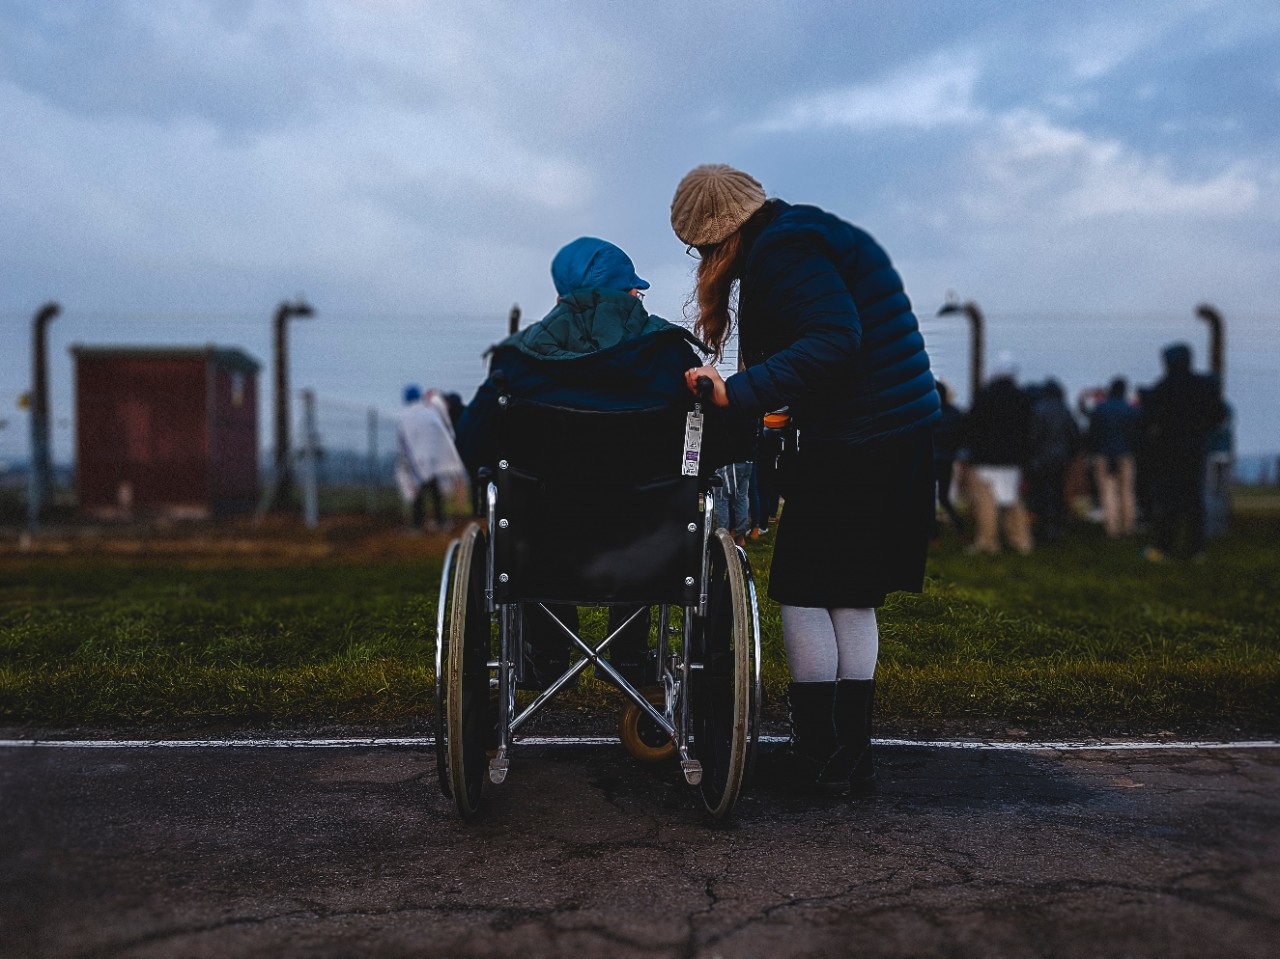 A wheelchair user and friend looking over at a group of people